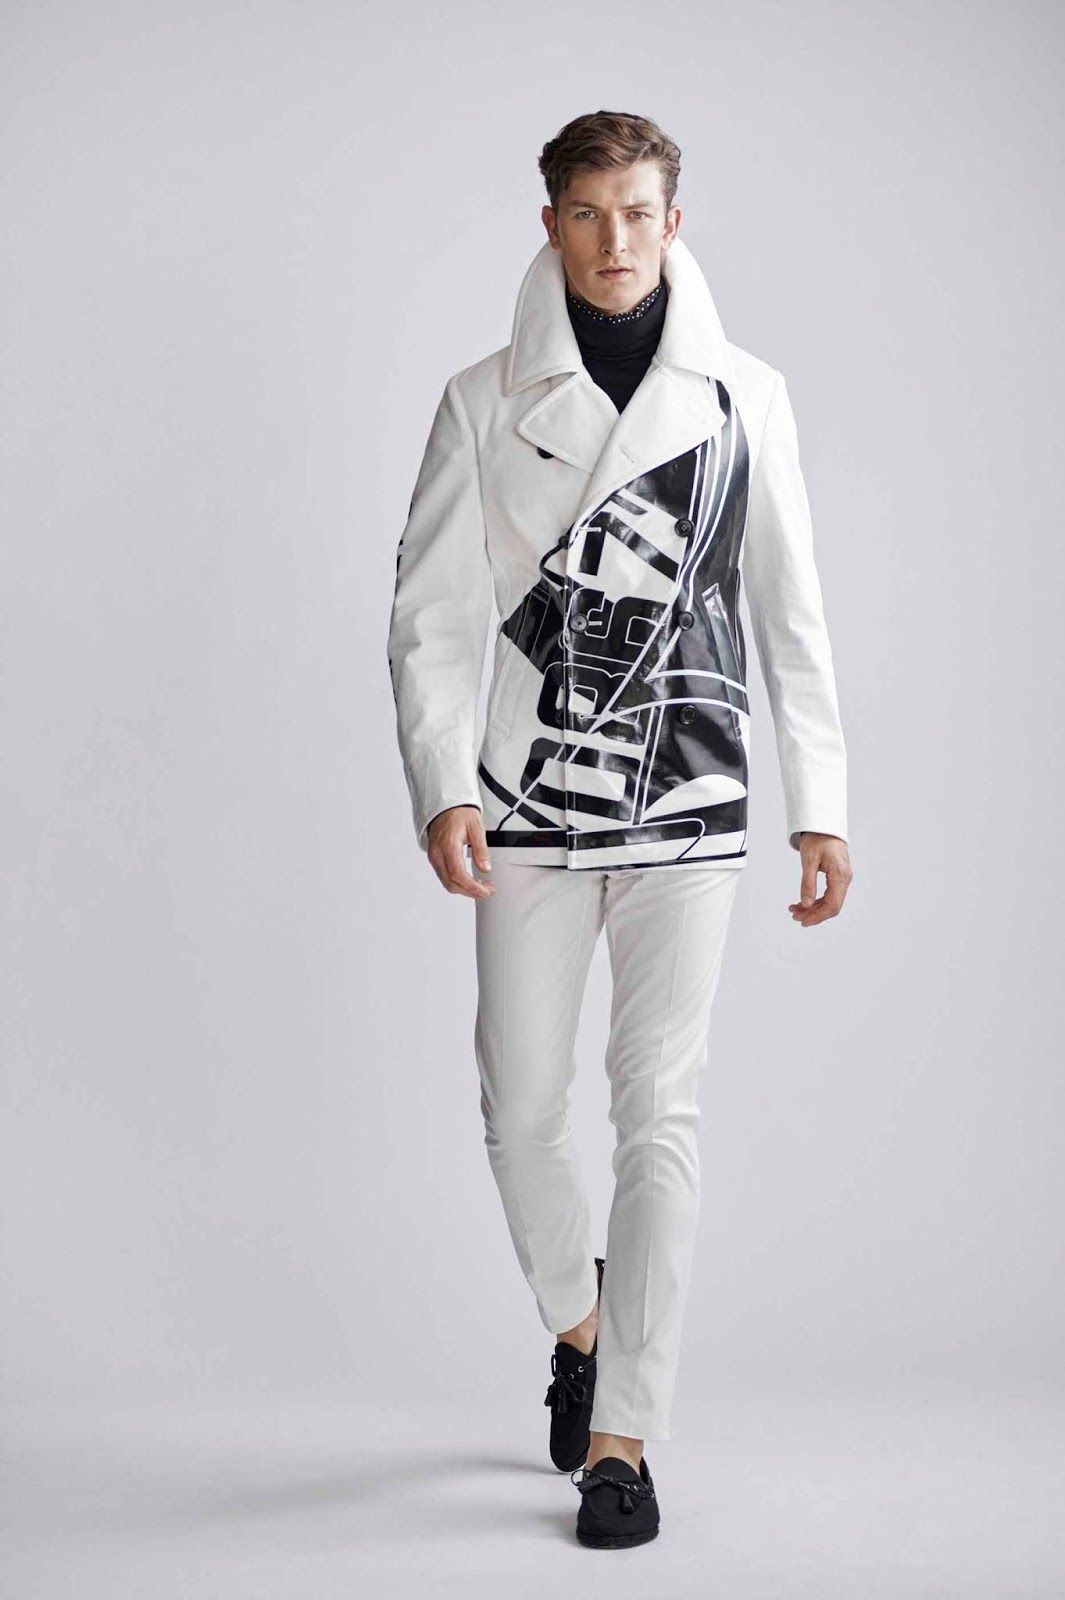 Male Fashion Trends  Ralph Lauren Purple Label Spring-Summer 2019 Collection ce0facc1efbed